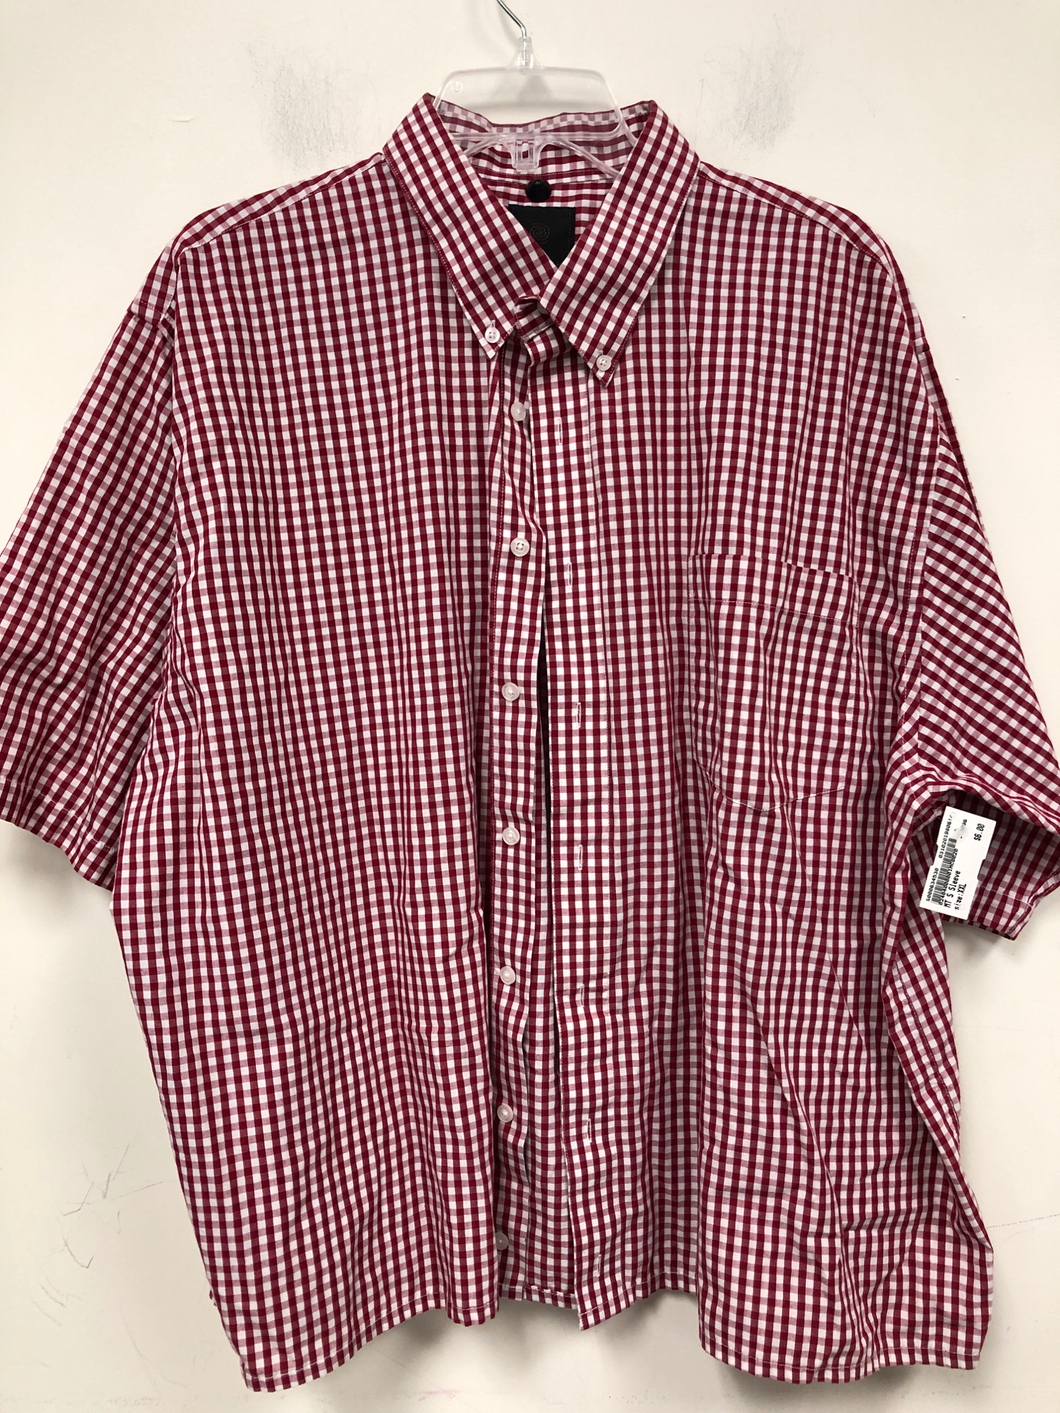 Short Sleeve Top Size XXL